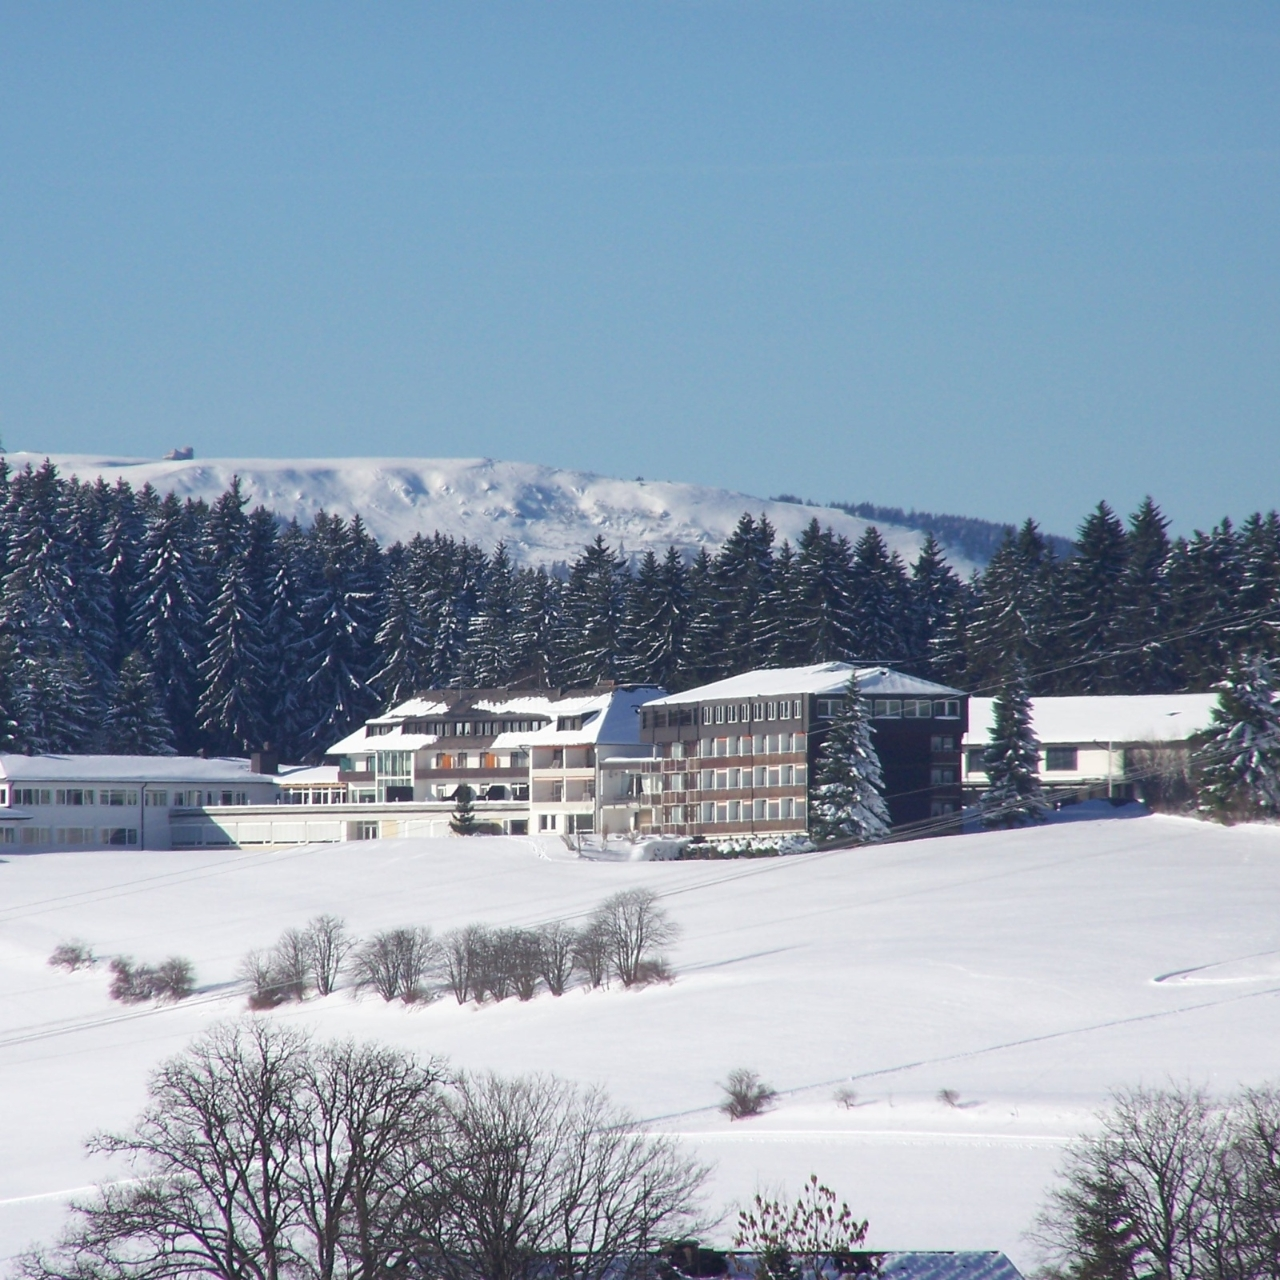 Hotel Saigerhoh 4 Hrs Star Hotel In Titisee Neustadt Titisee Baden Wurttemberg